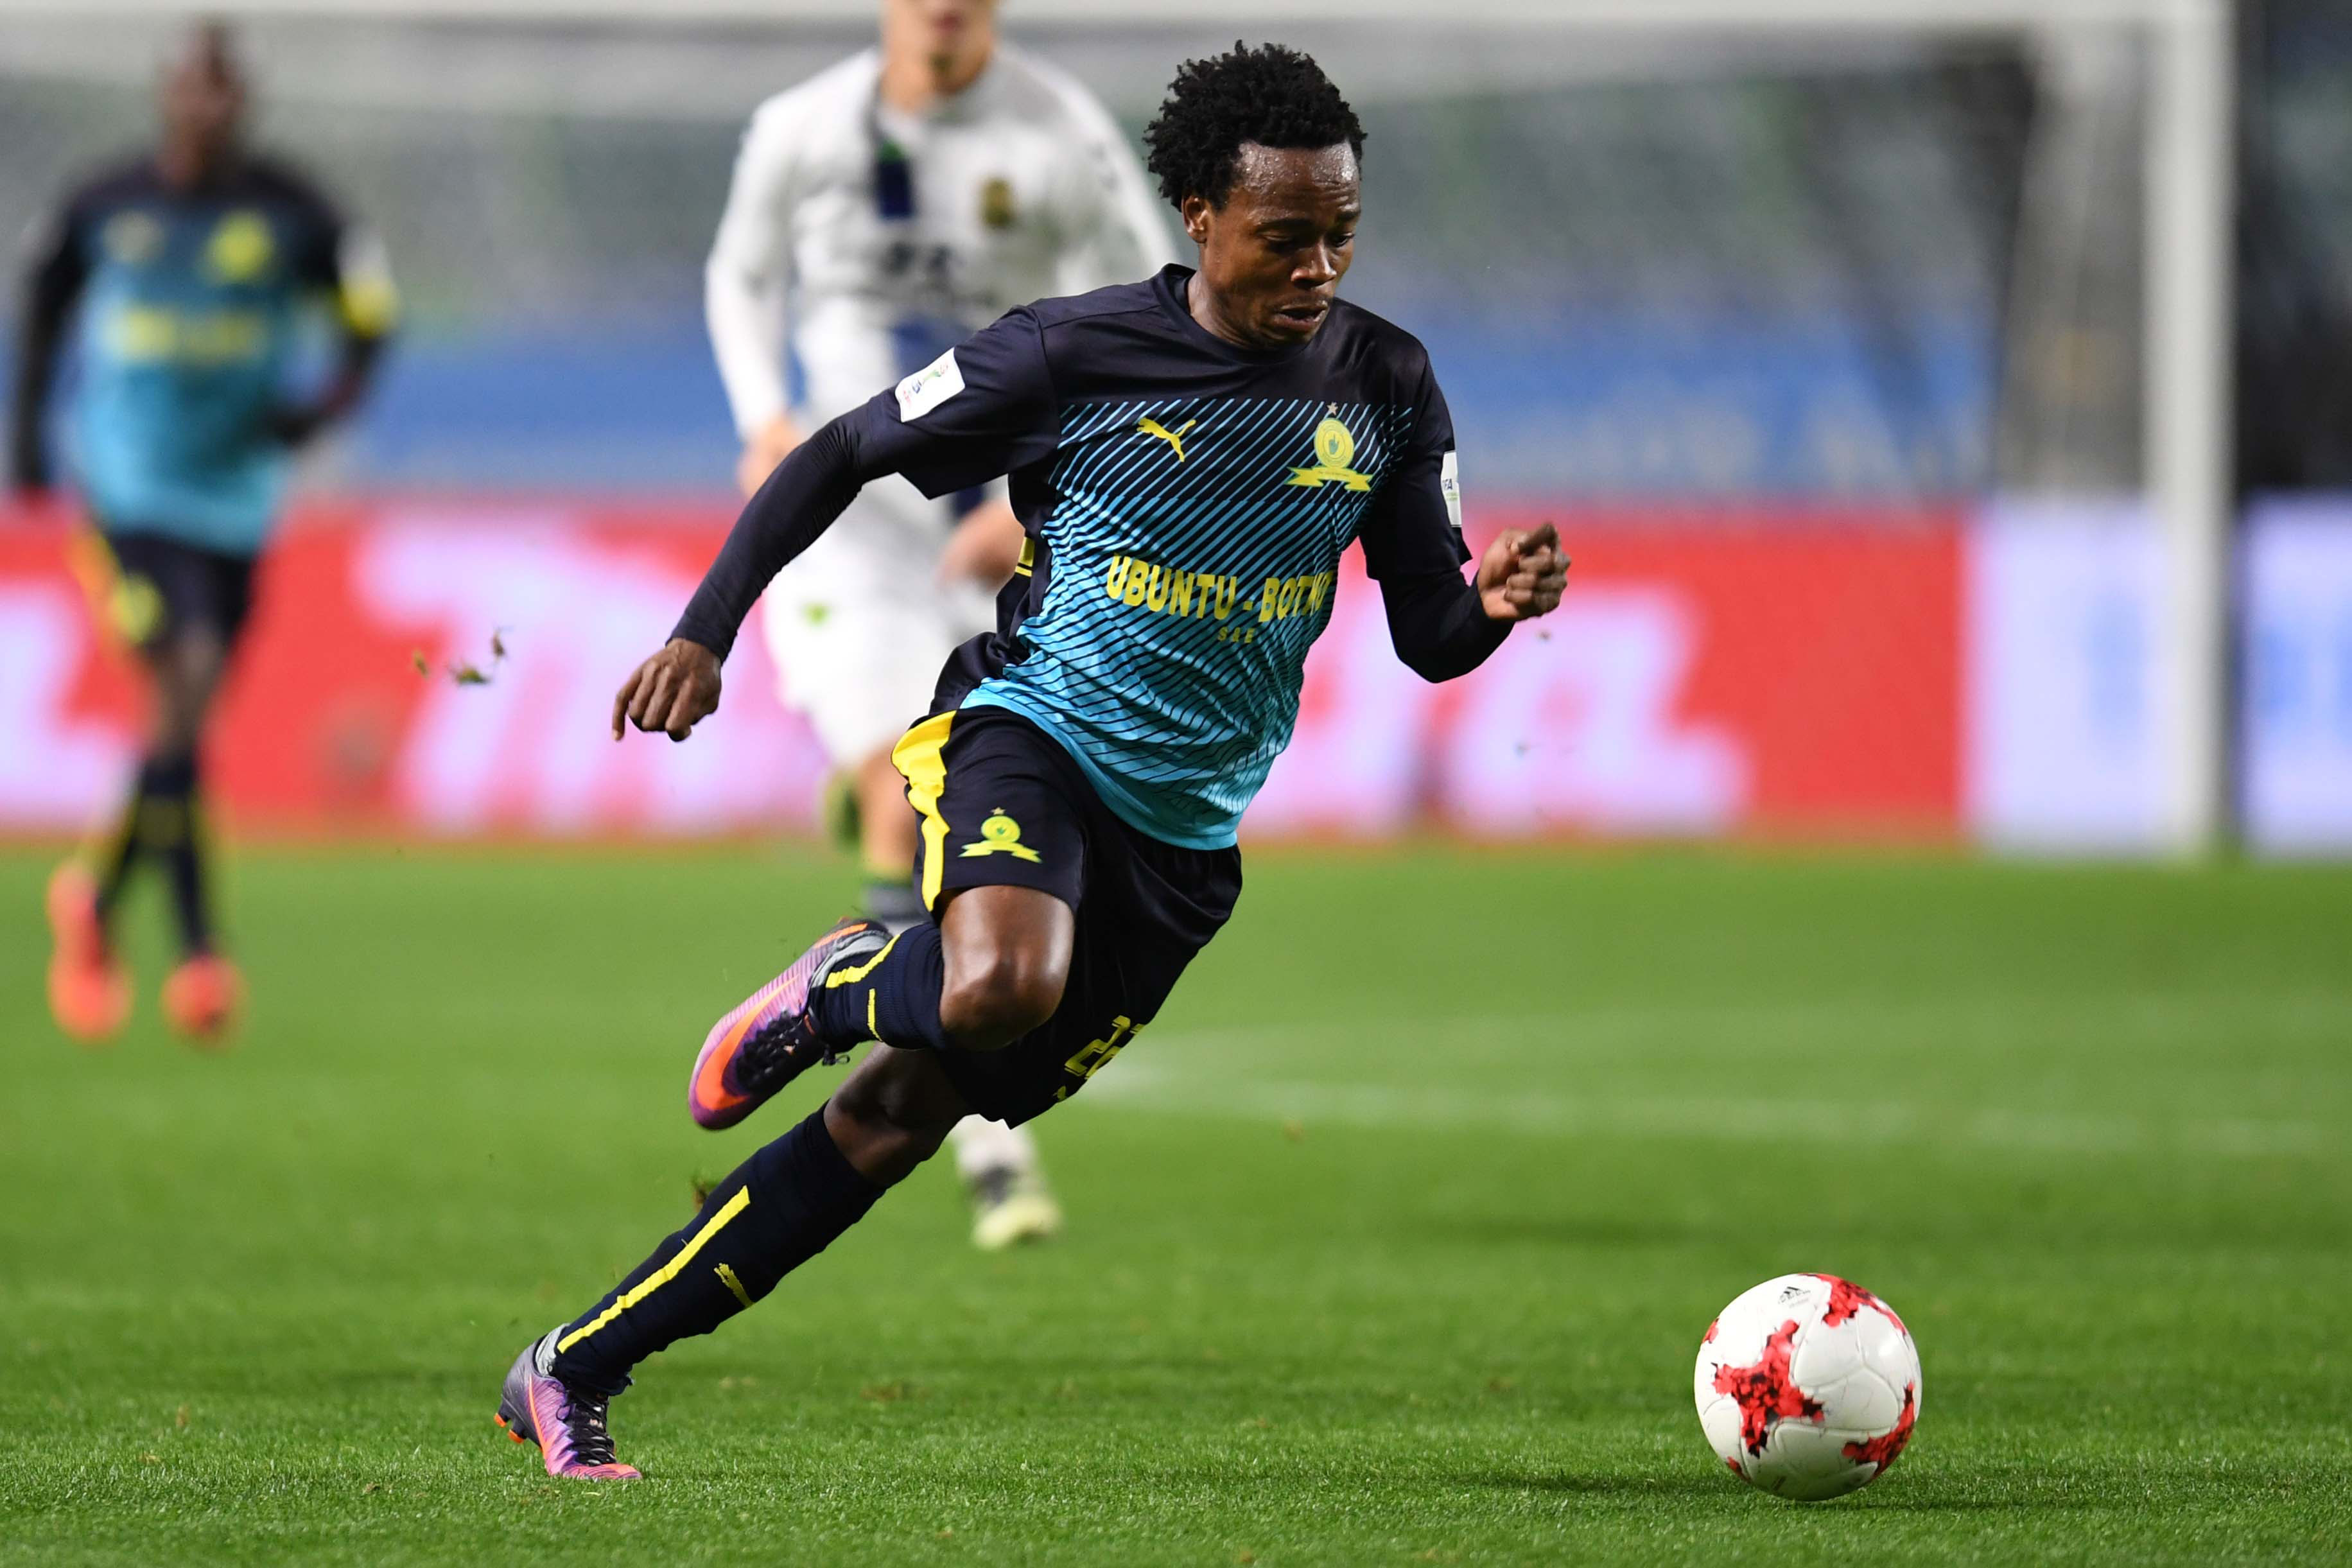 14 December 2016: Percy Tau, then of Mamelodi Sundowns during the 2016 FIFA Club World Cup match for fifth place between Mamelodi Sundowns and Jeonbuk Hyundai at the Suita City Football Stadium, in Suita, Japan. (Photo by Atsushi Tomura/Getty)